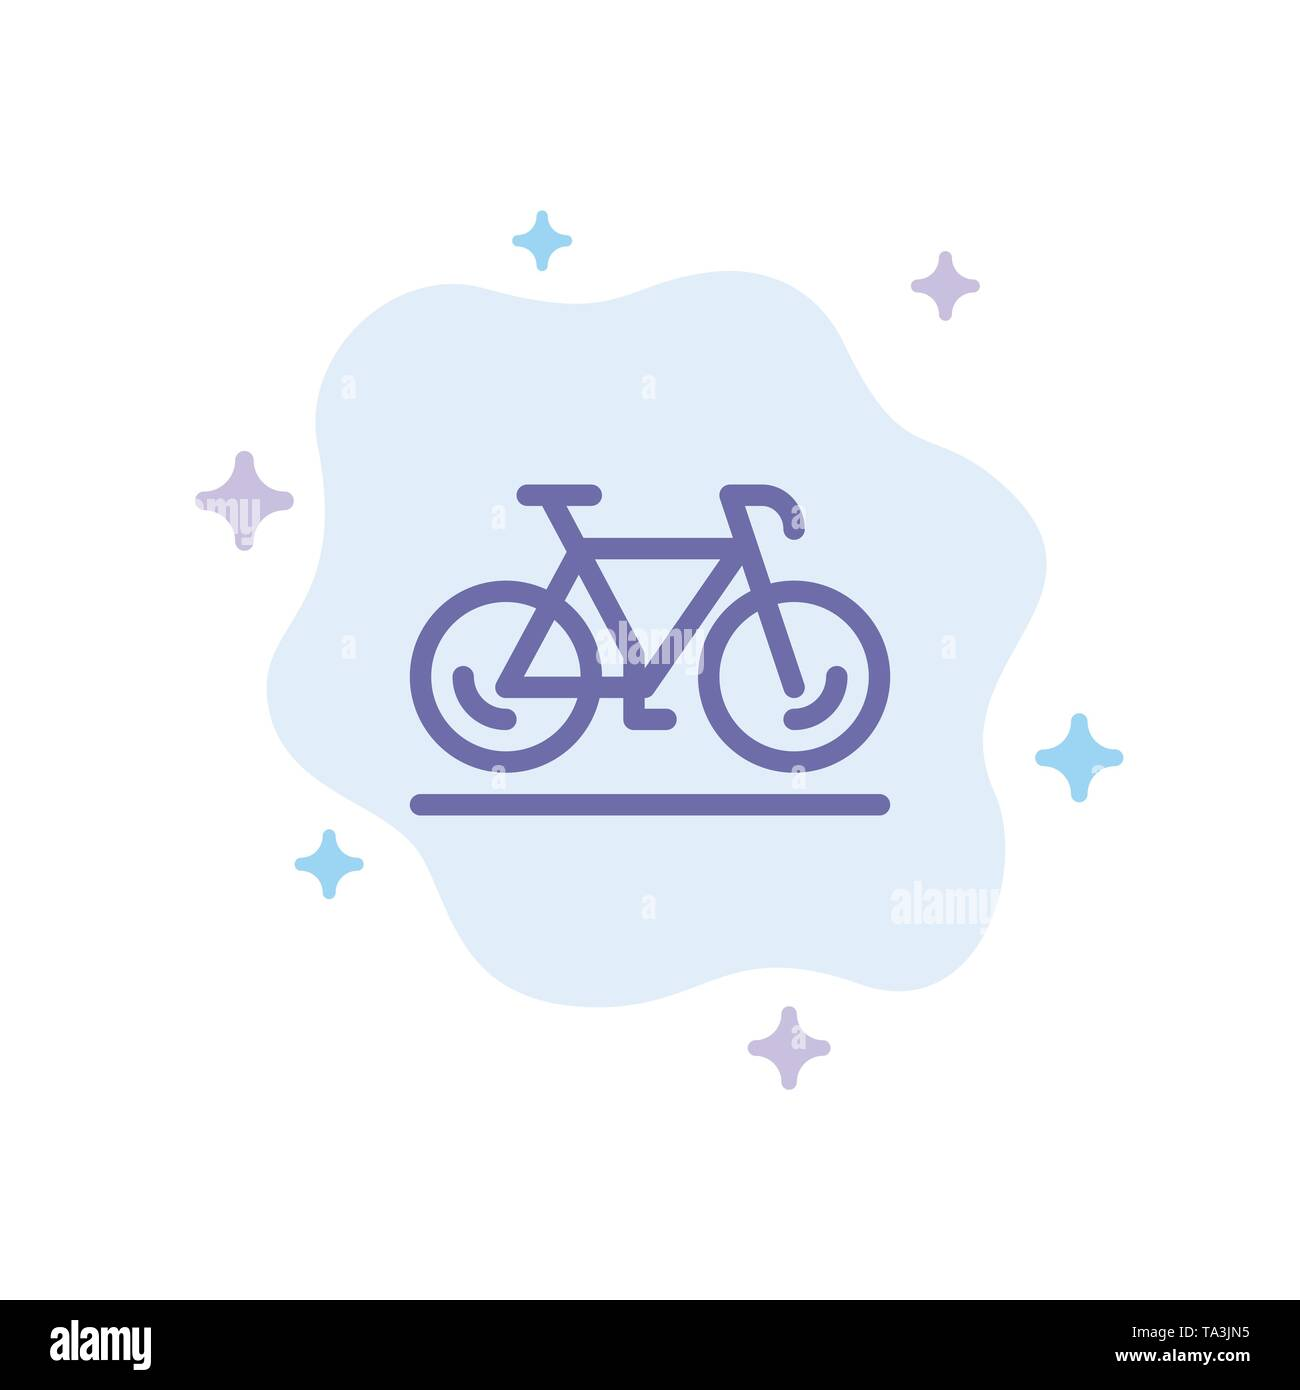 Bicycle, Movement, Walk, Sport Blue Icon on Abstract Cloud Background - Stock Image